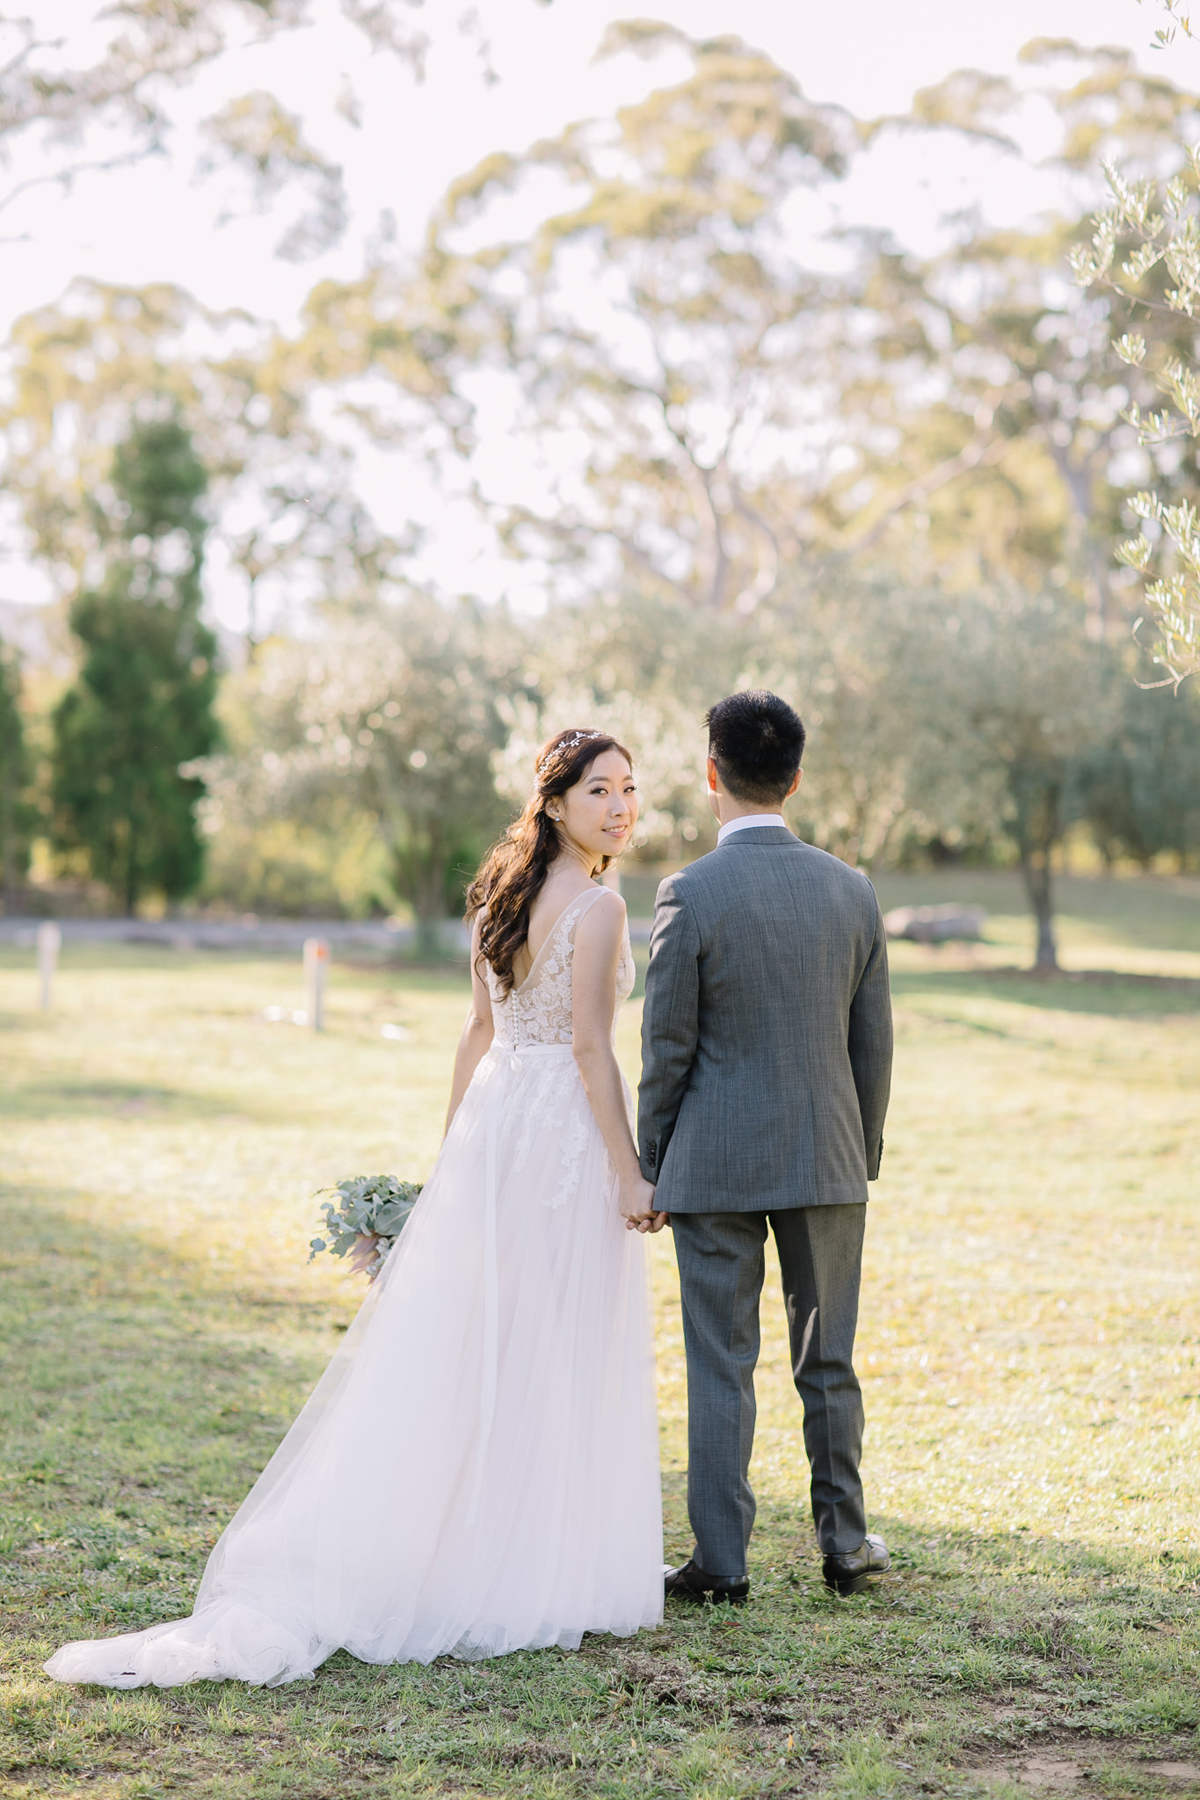 jess-andrew-kangaroo-valley-wedding088